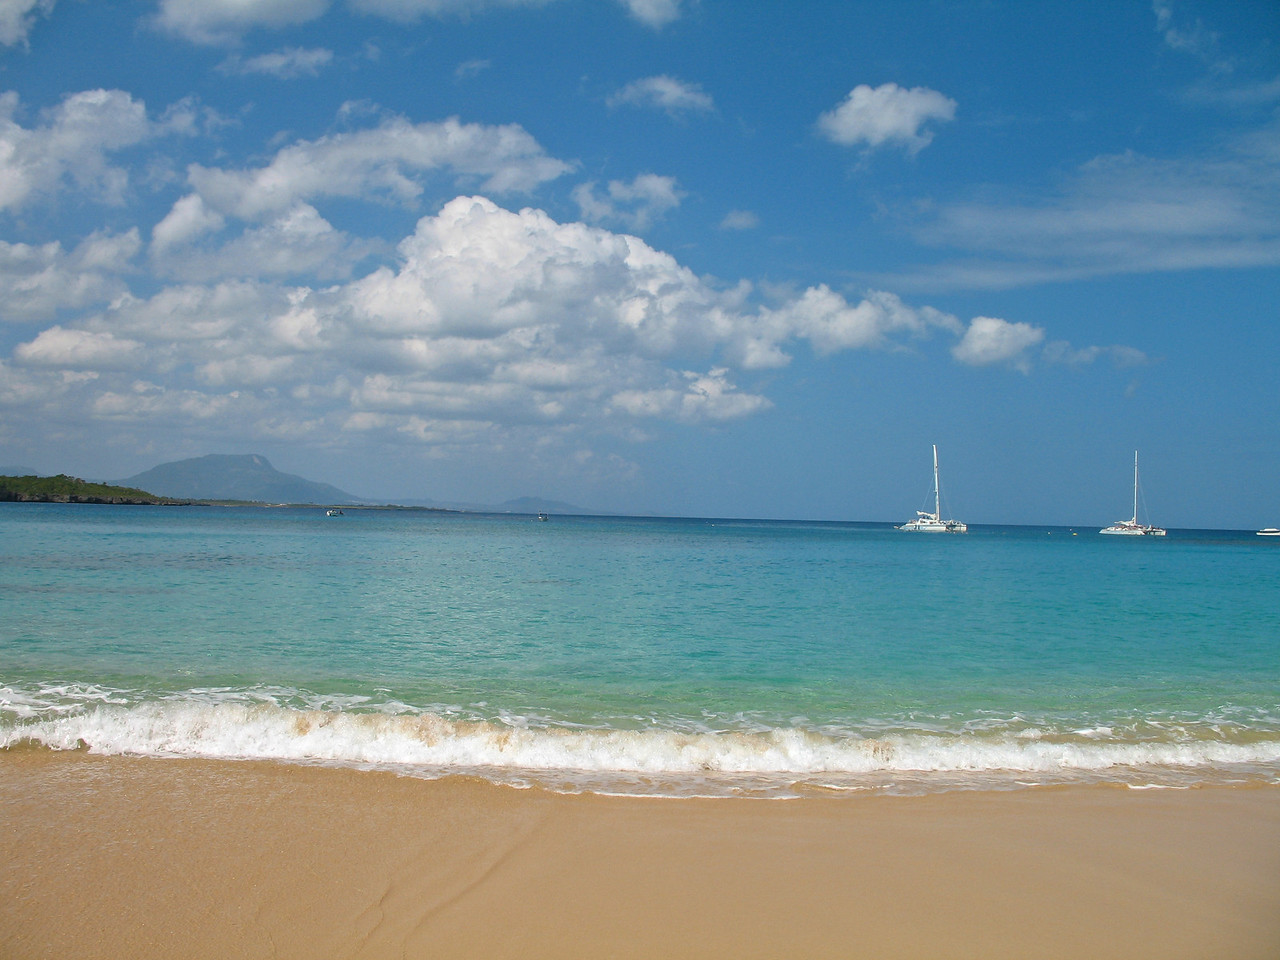 The water is typical Caribbean blue.